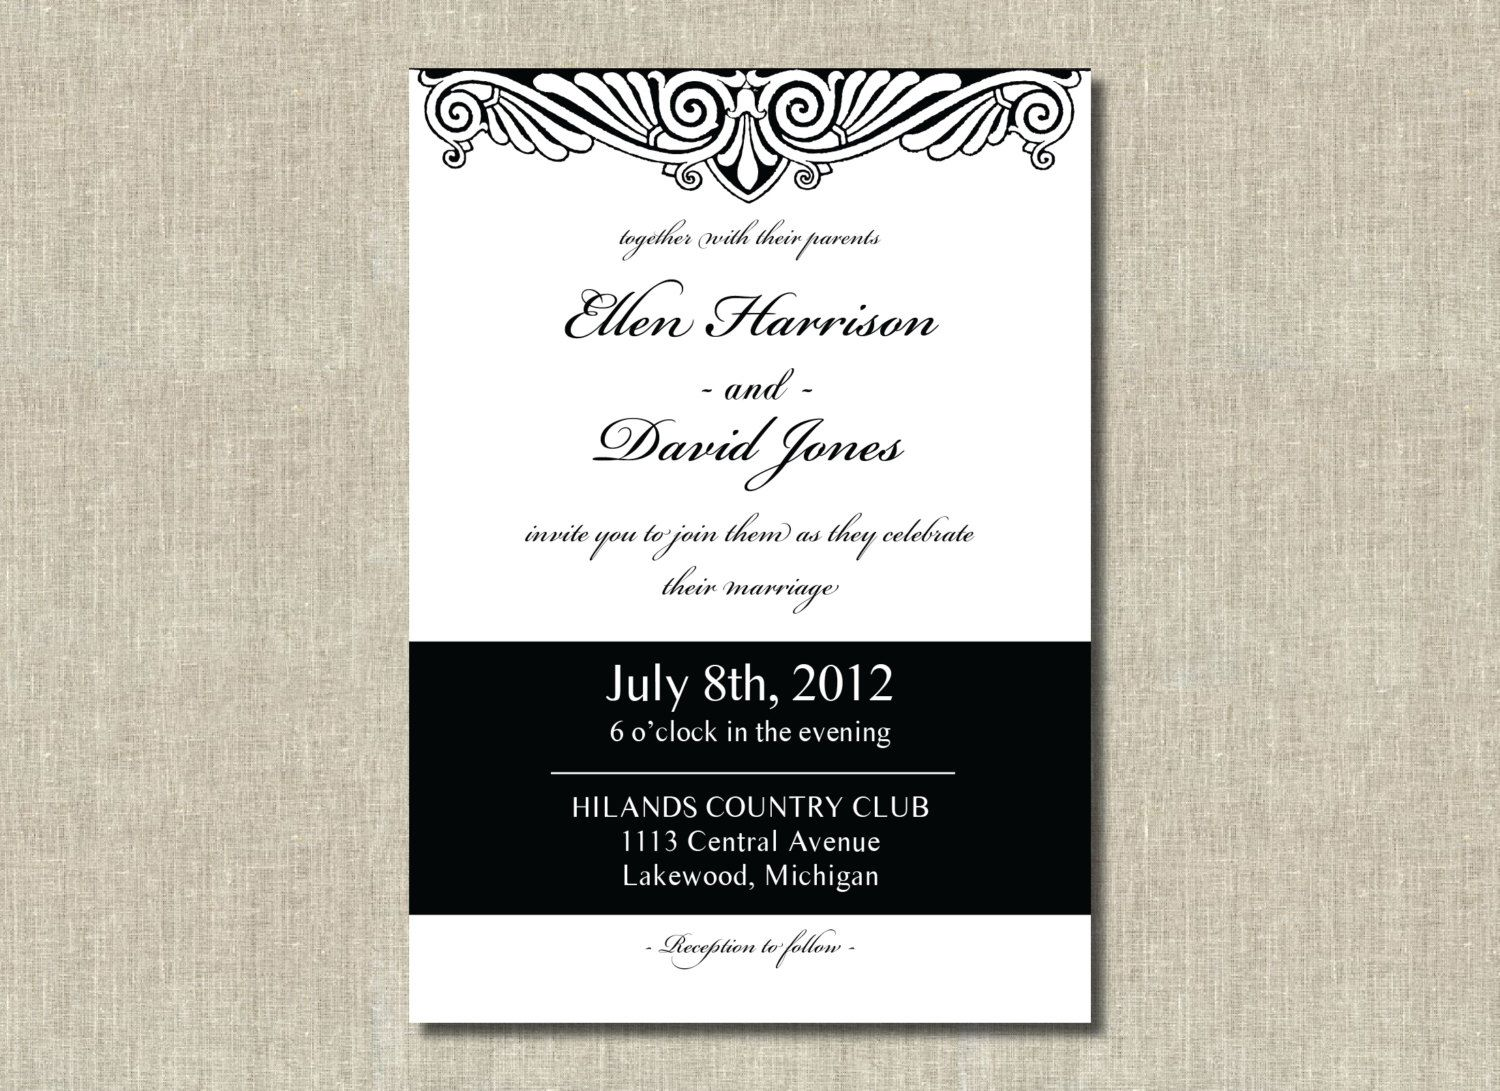 Printable Wedding Invitation Elegant Art Deco Black And White